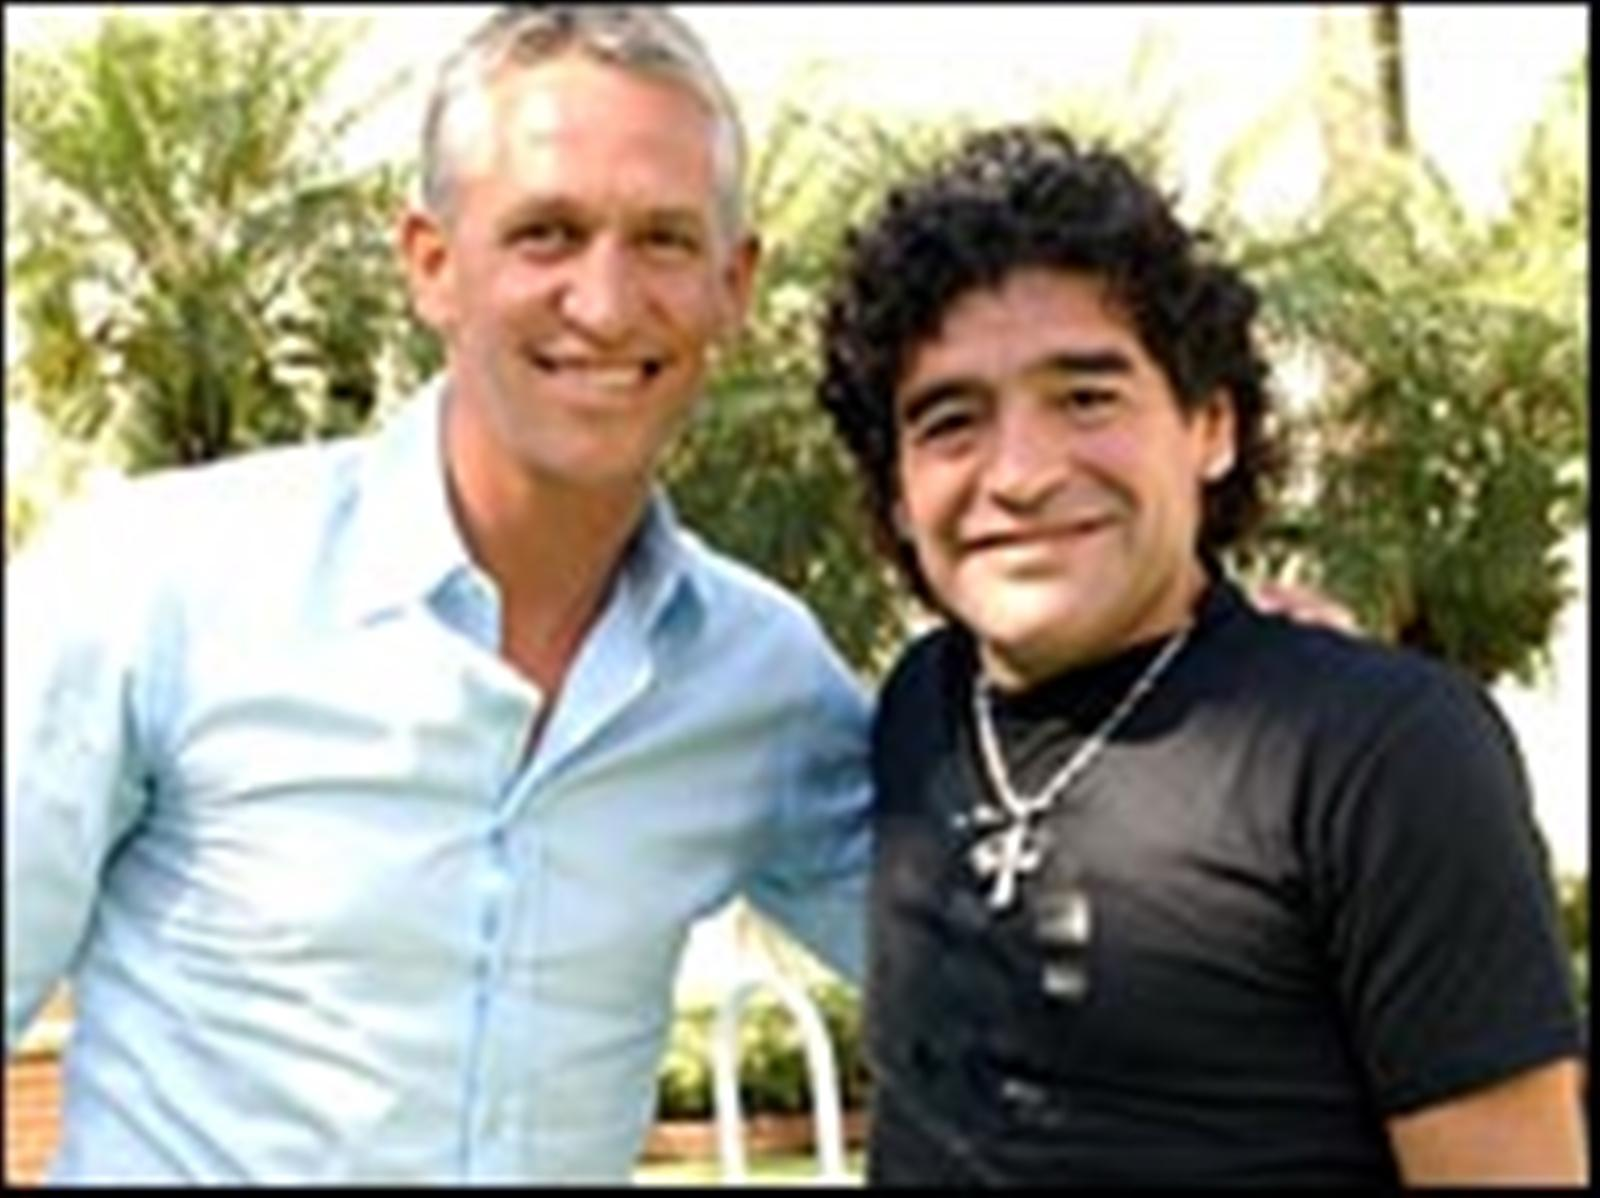 With Gary Lineker